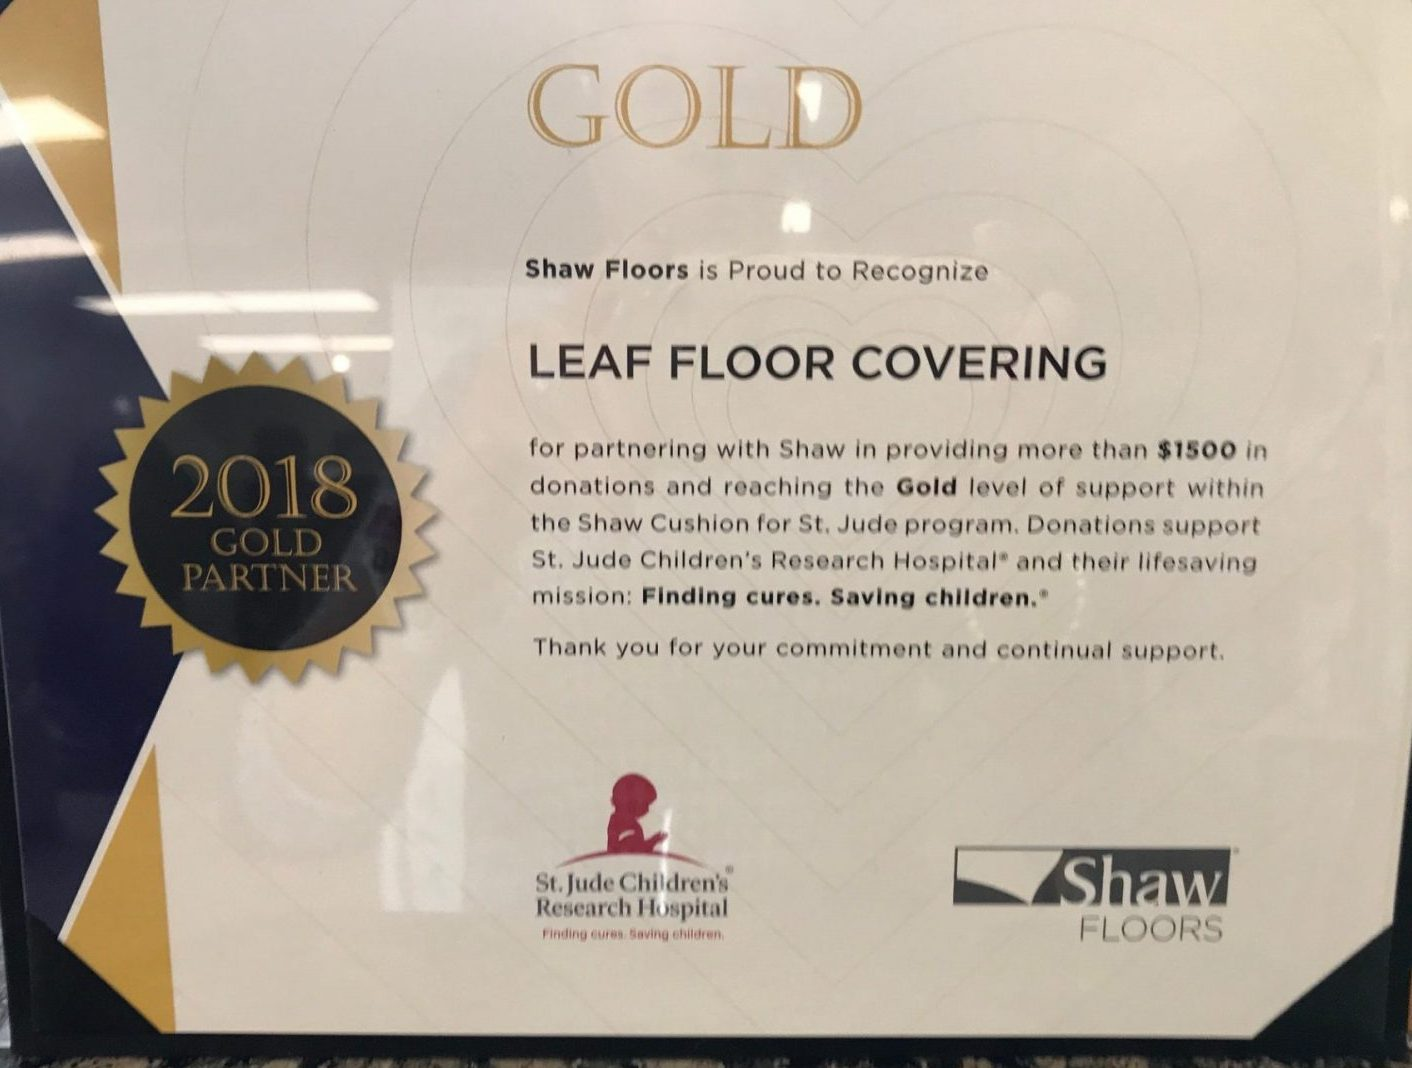 Leaf floor coverings | Leaf Floor Covering